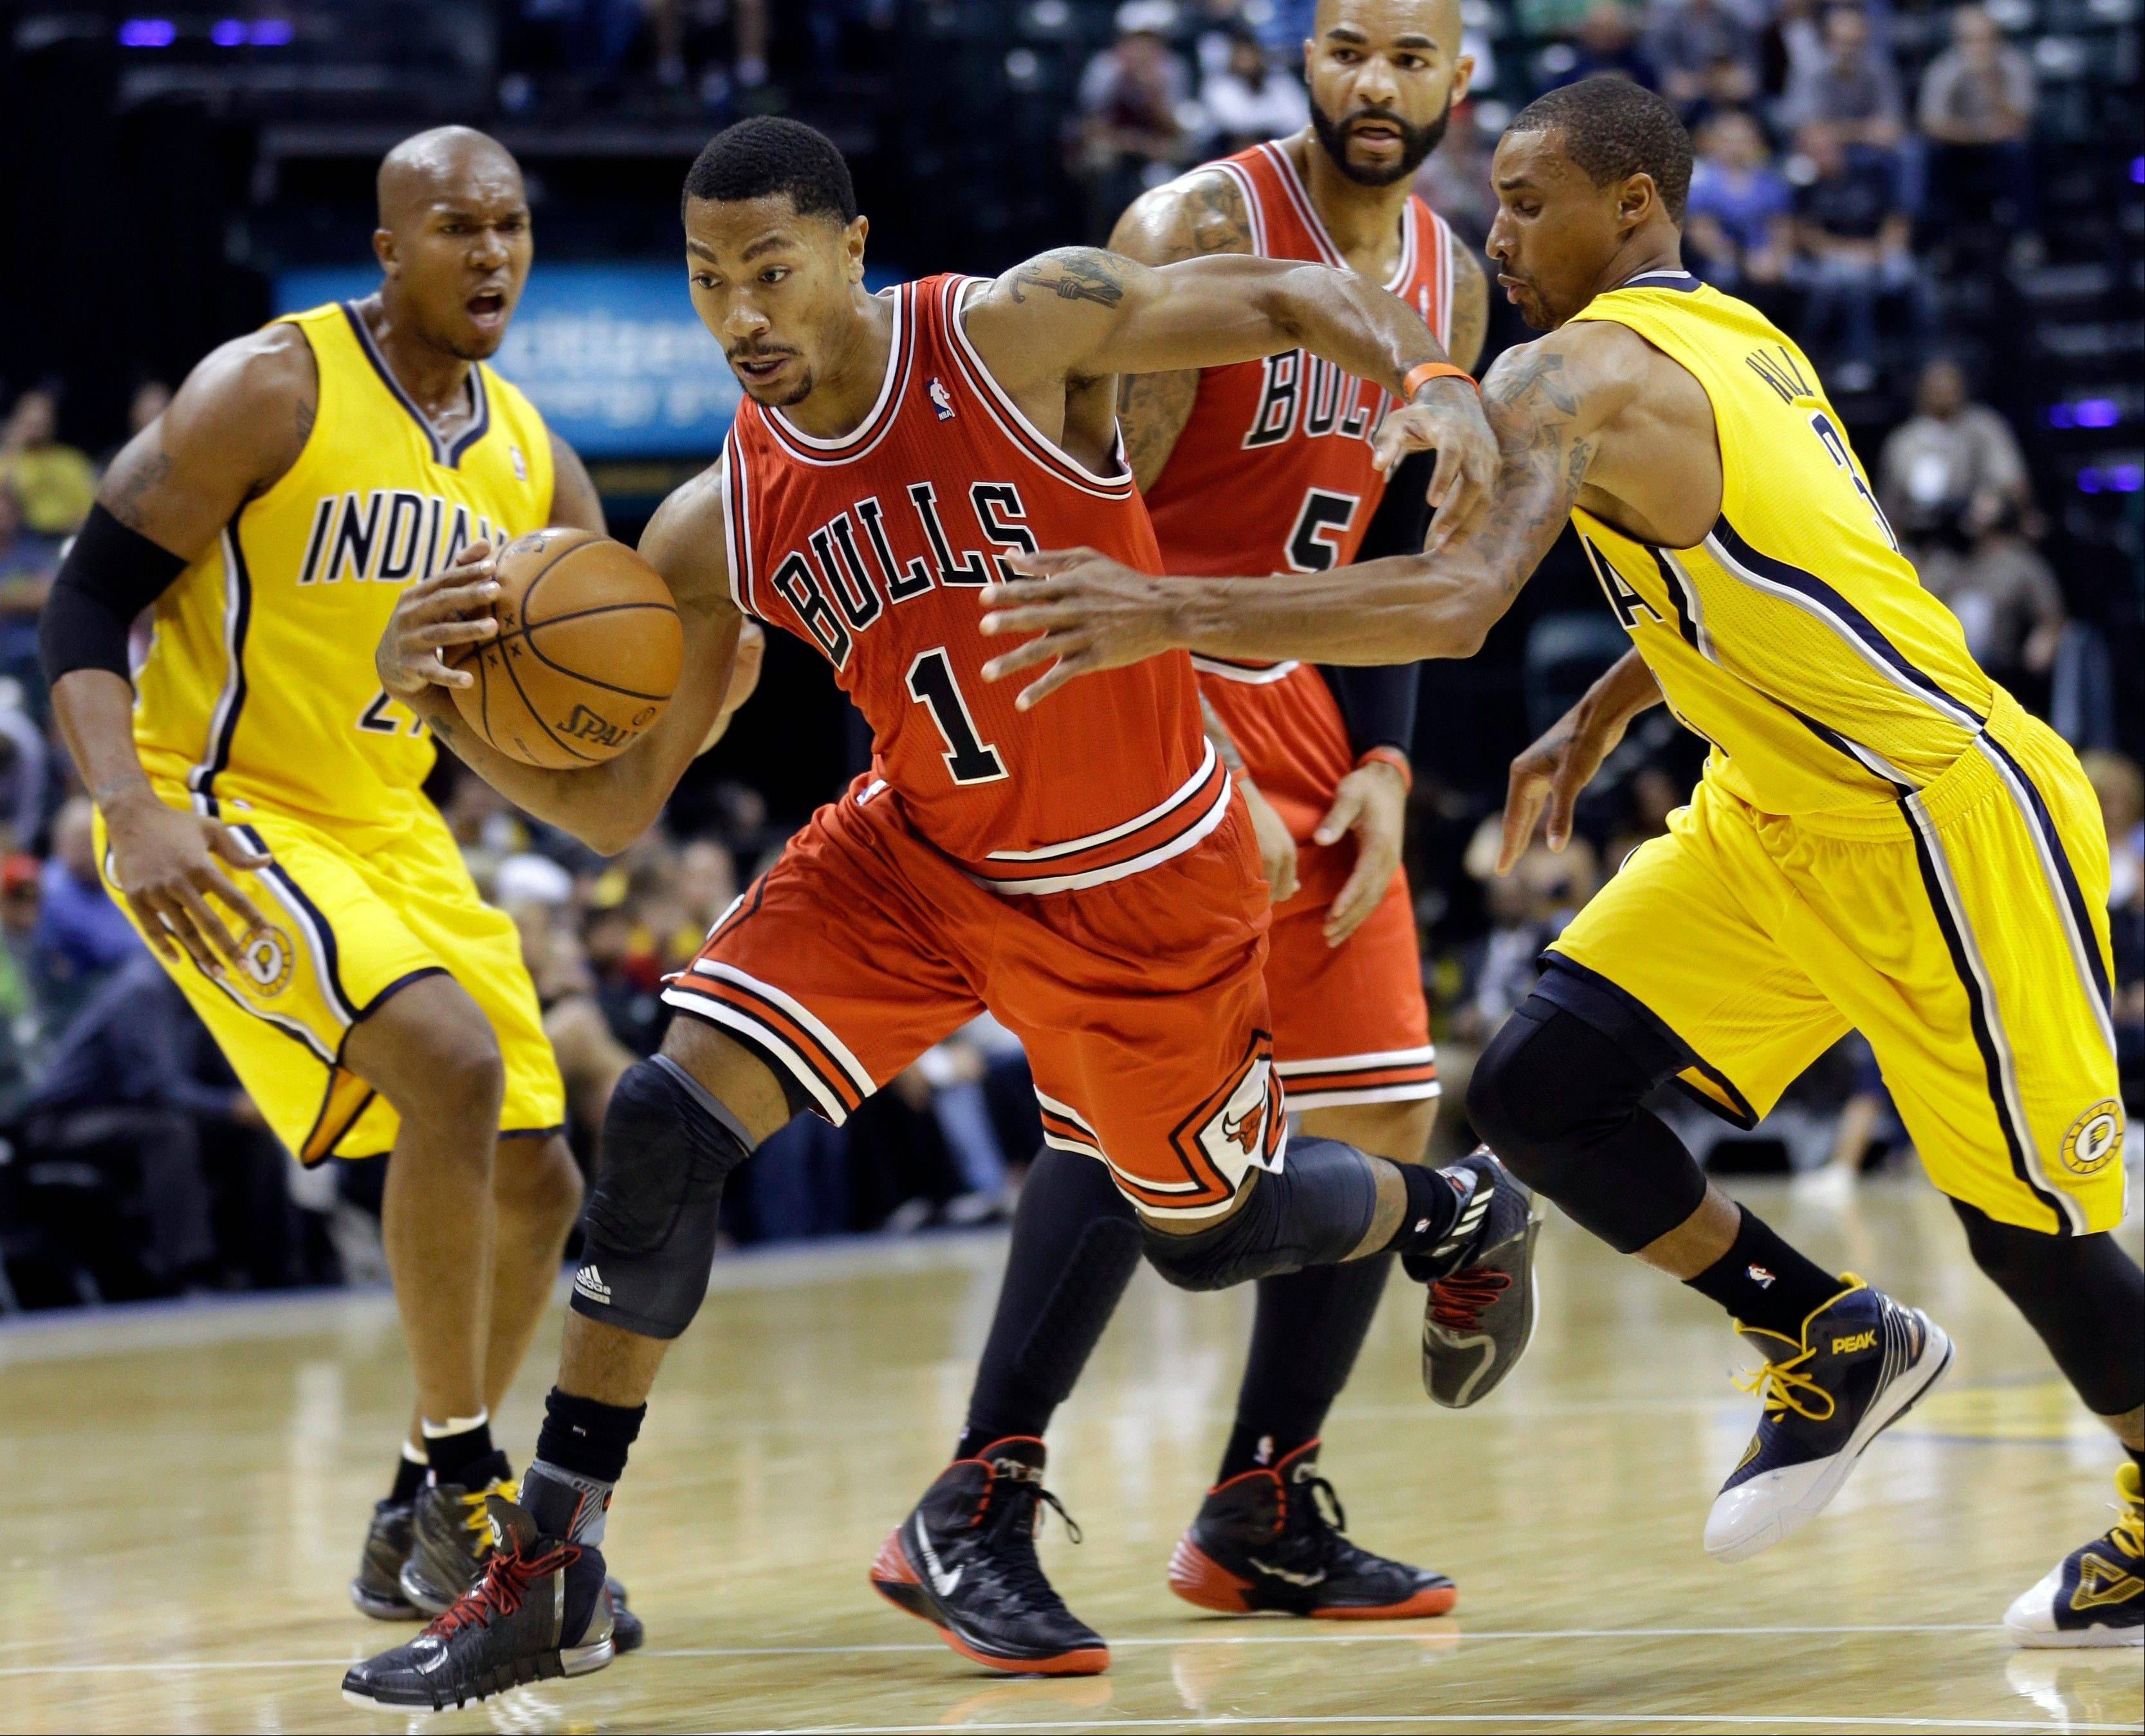 Bulls guard Derrick Rose, playing in his first game since April 28, 2013, cuts between Pacers guard George Hill, right, and power forward David West during Saturday night�s preseason action.